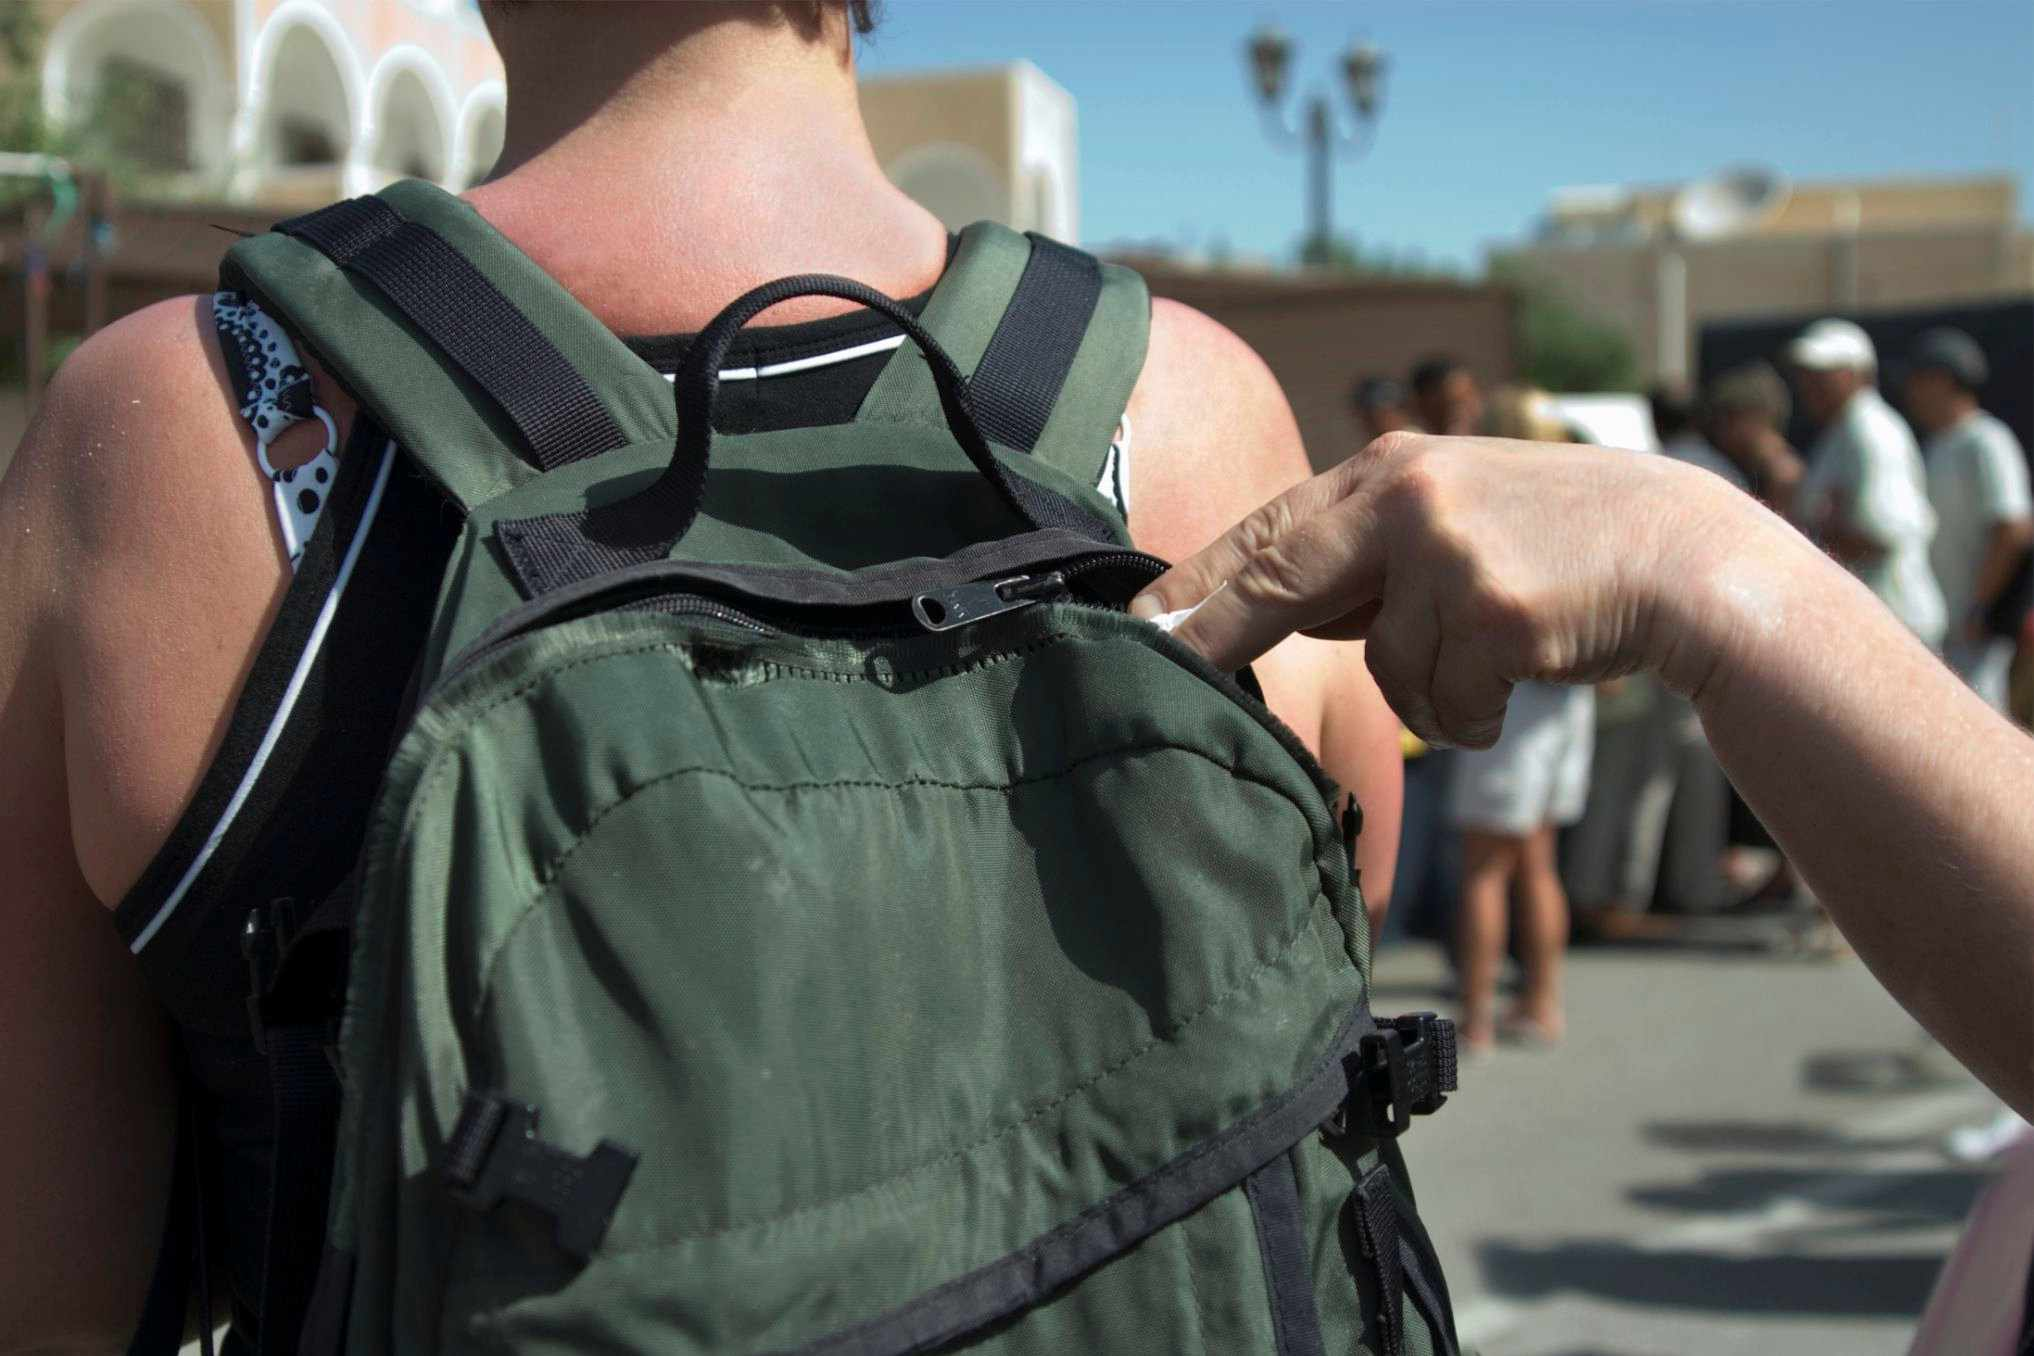 Man reaching into backpack